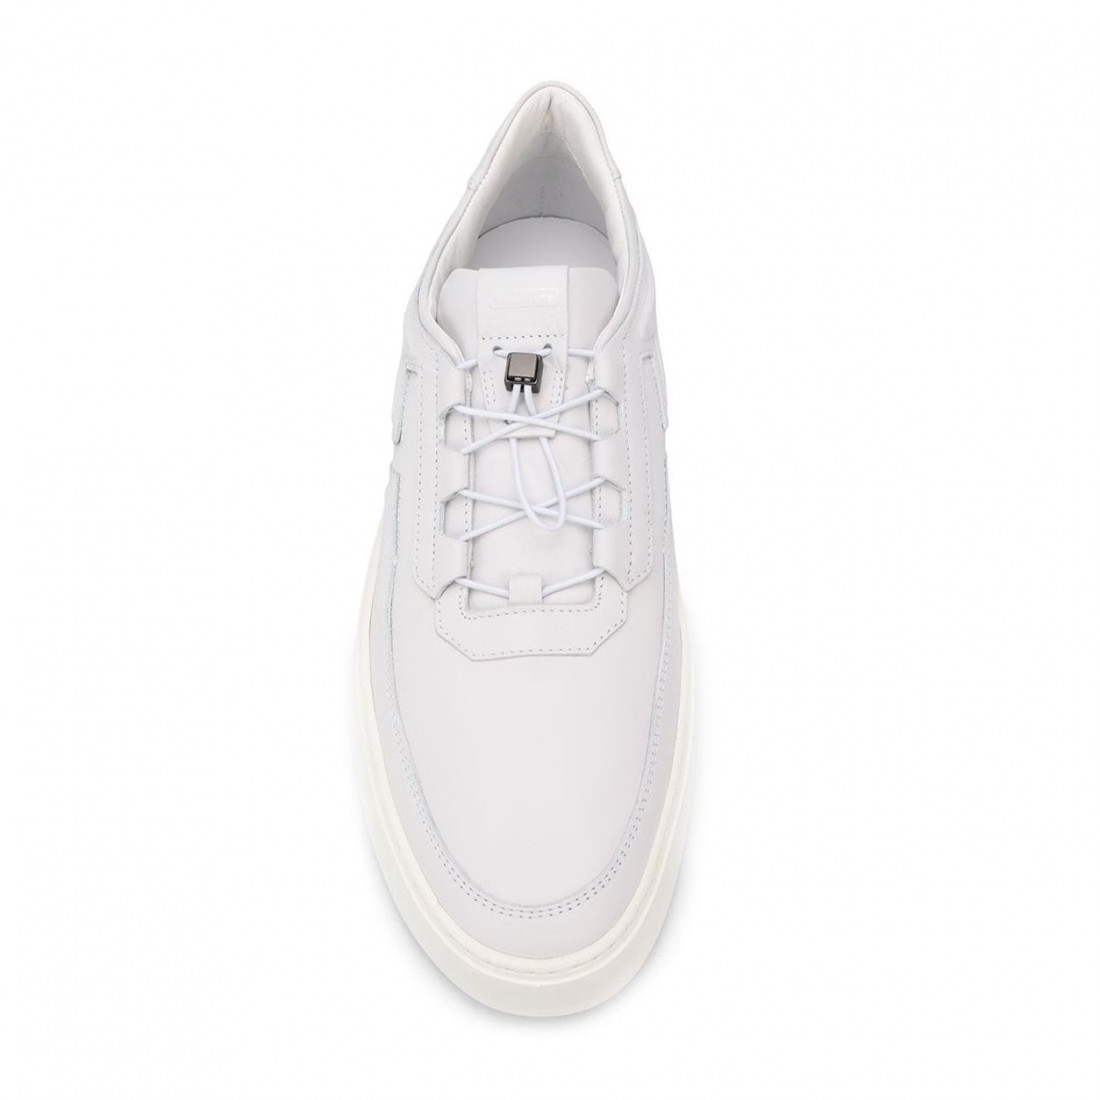 sneakers man tods xxm14c0ct10jusb001 6674